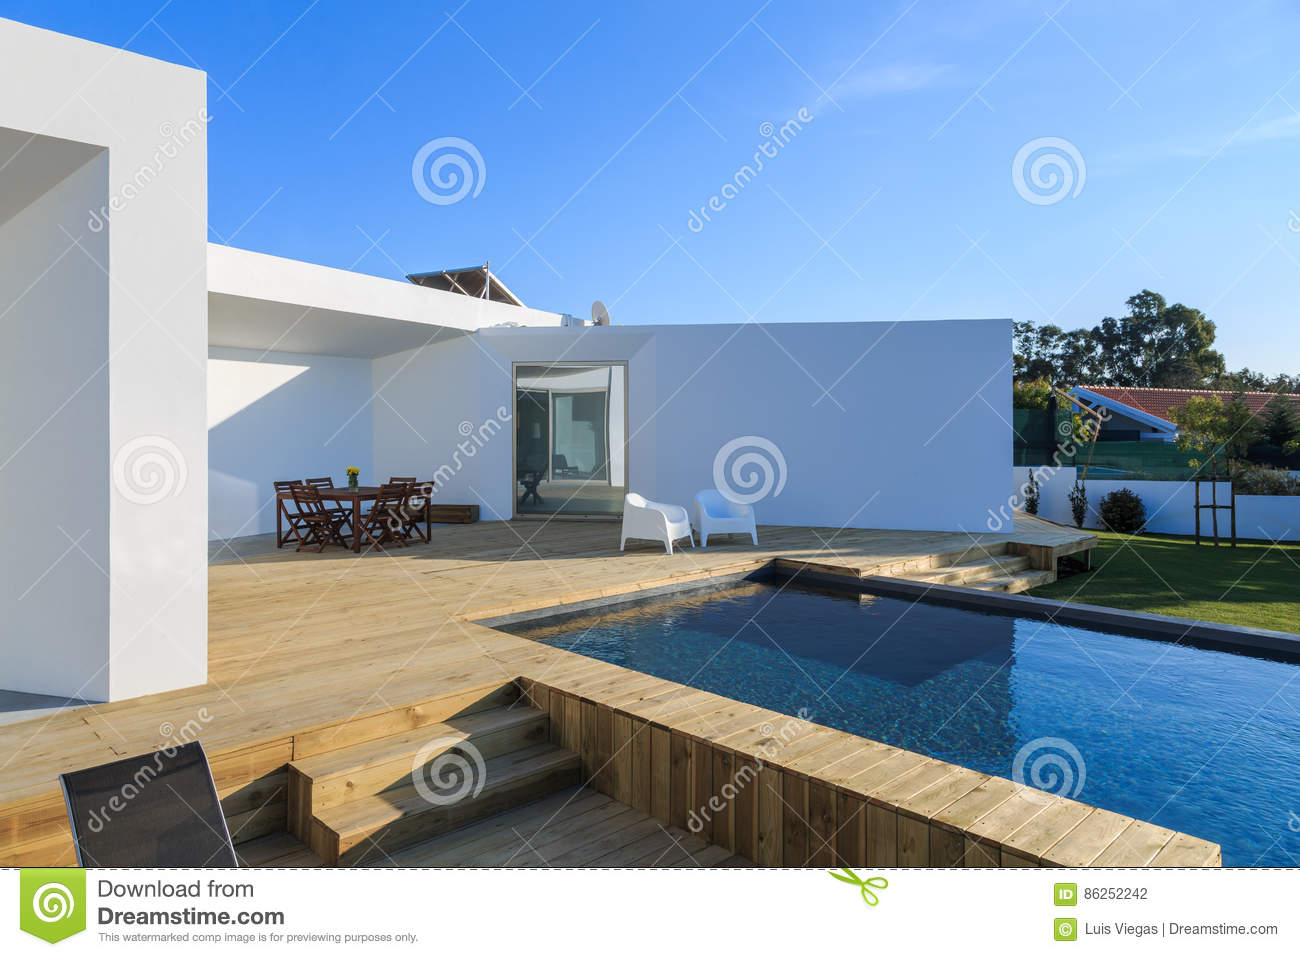 maison moderne avec la piscine de jardin et la plate forme en bois photo stock image du. Black Bedroom Furniture Sets. Home Design Ideas